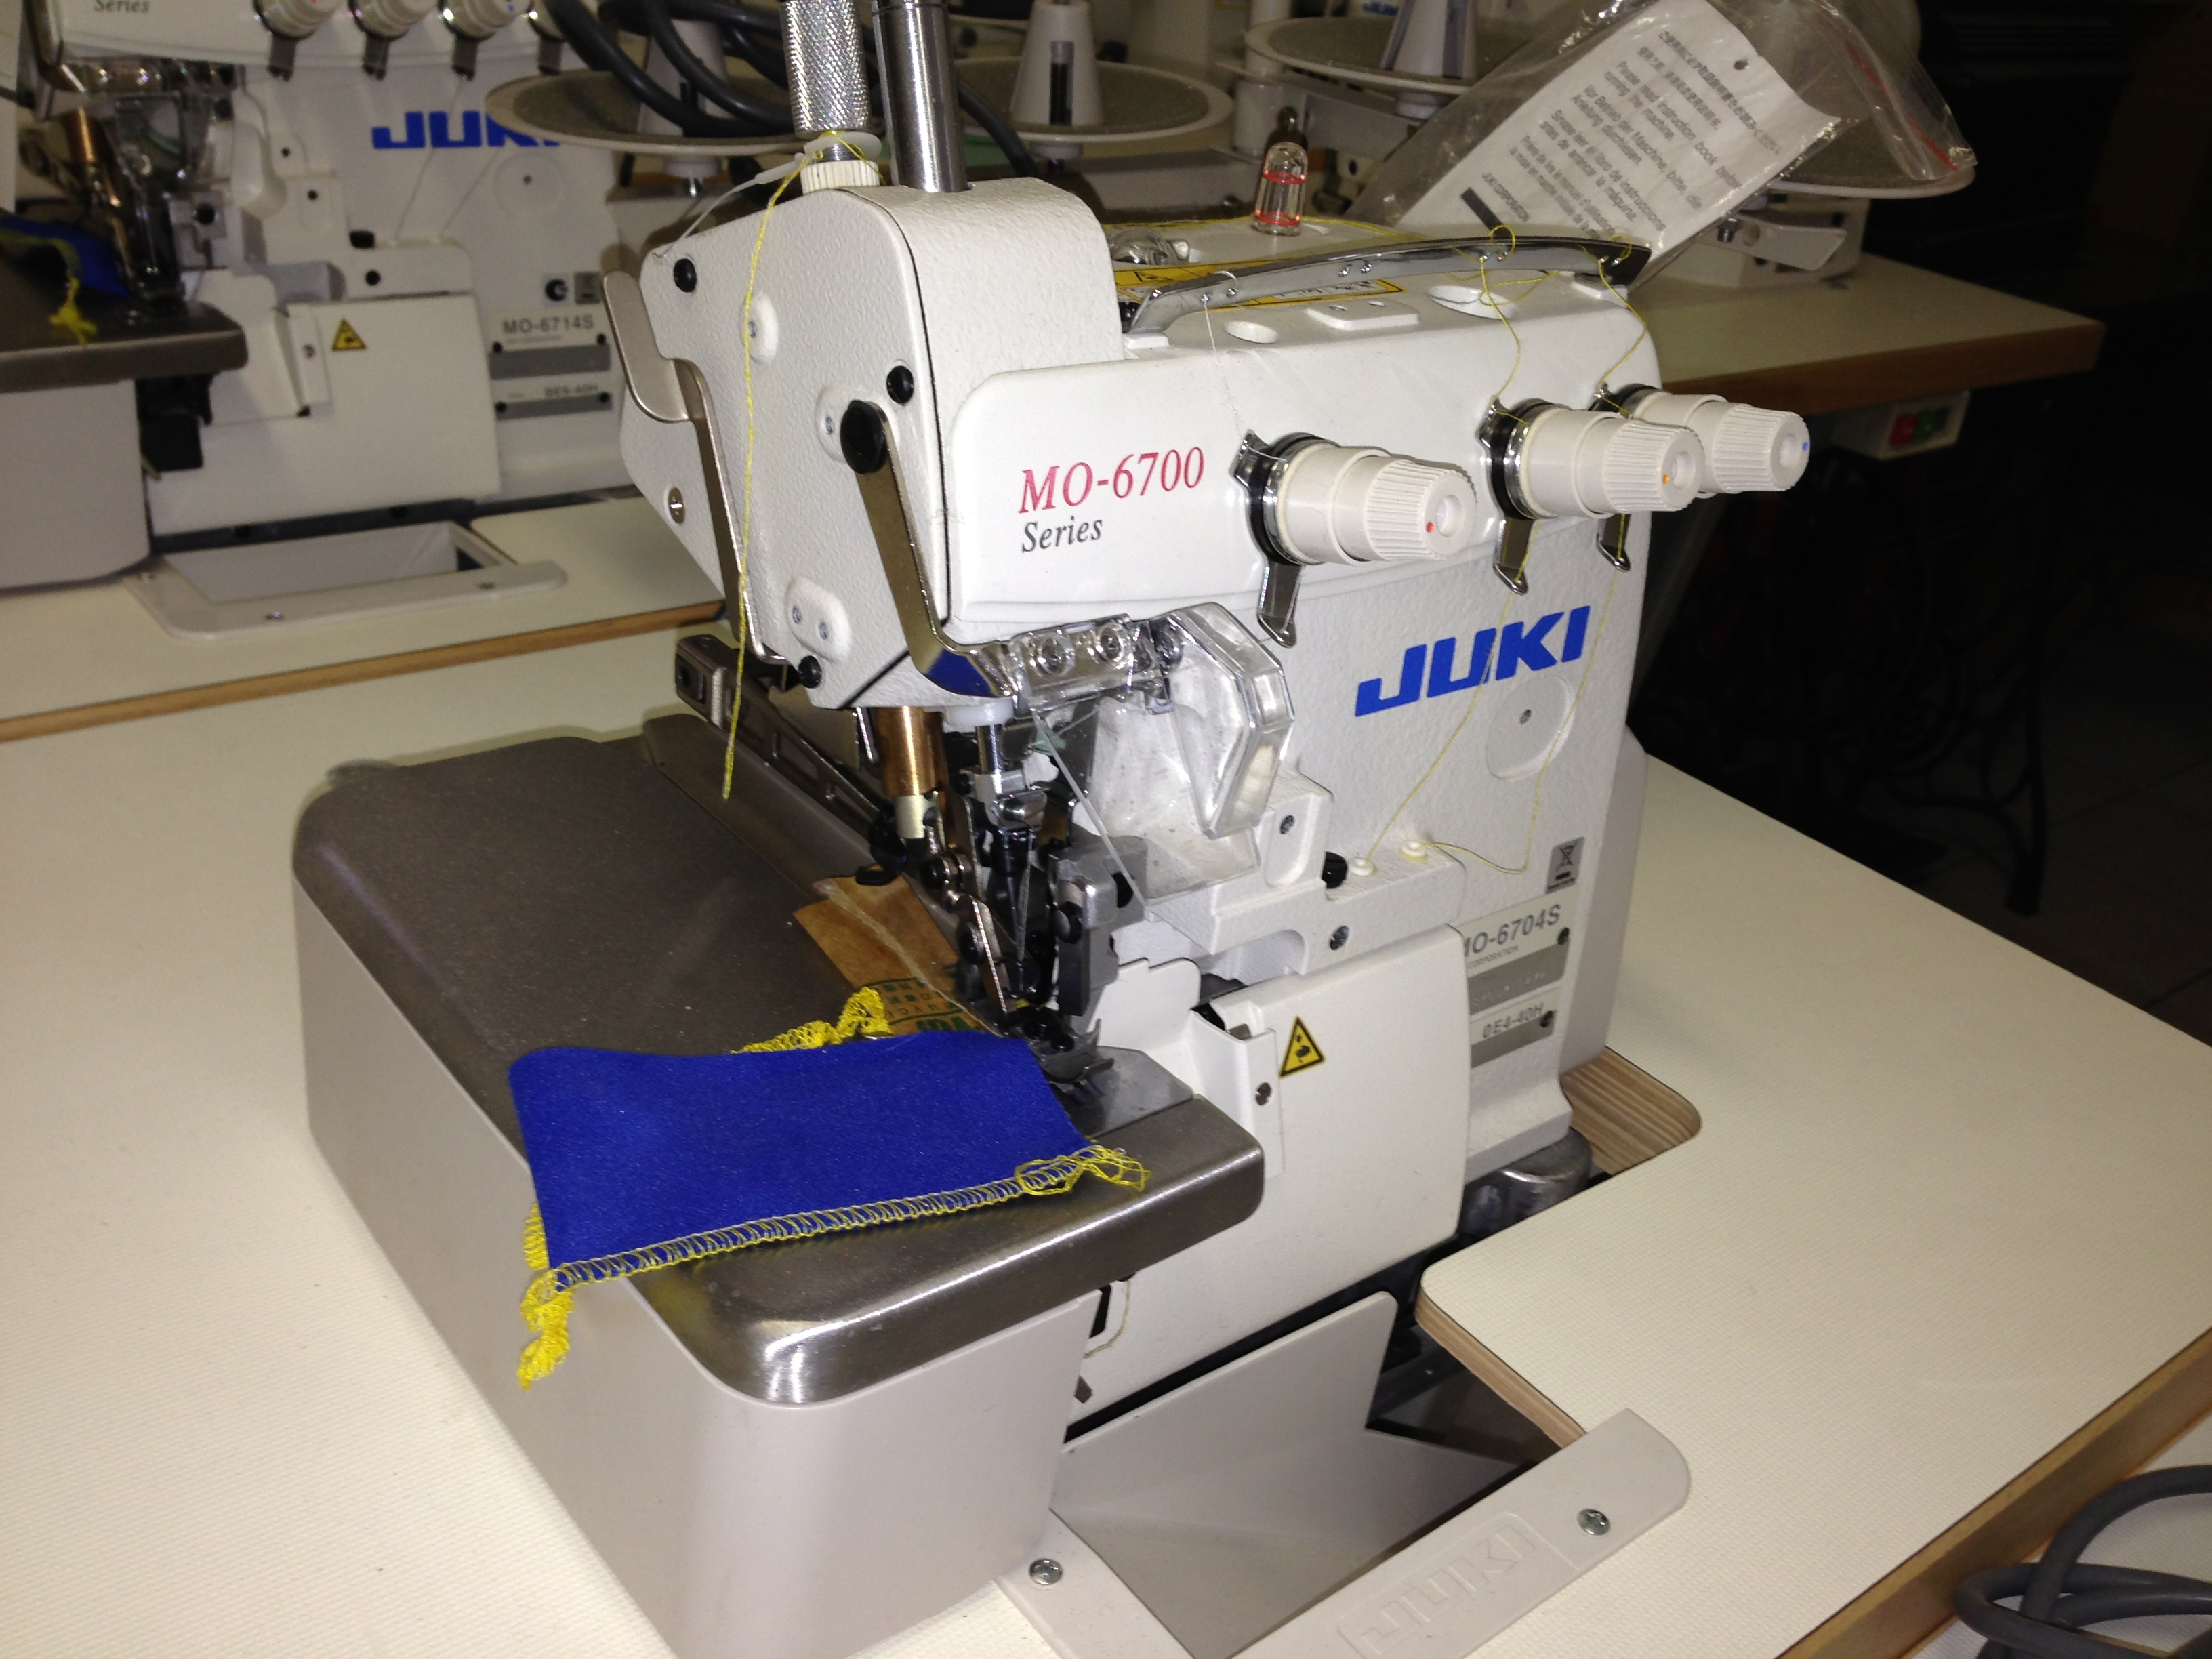 new juki sewing machine